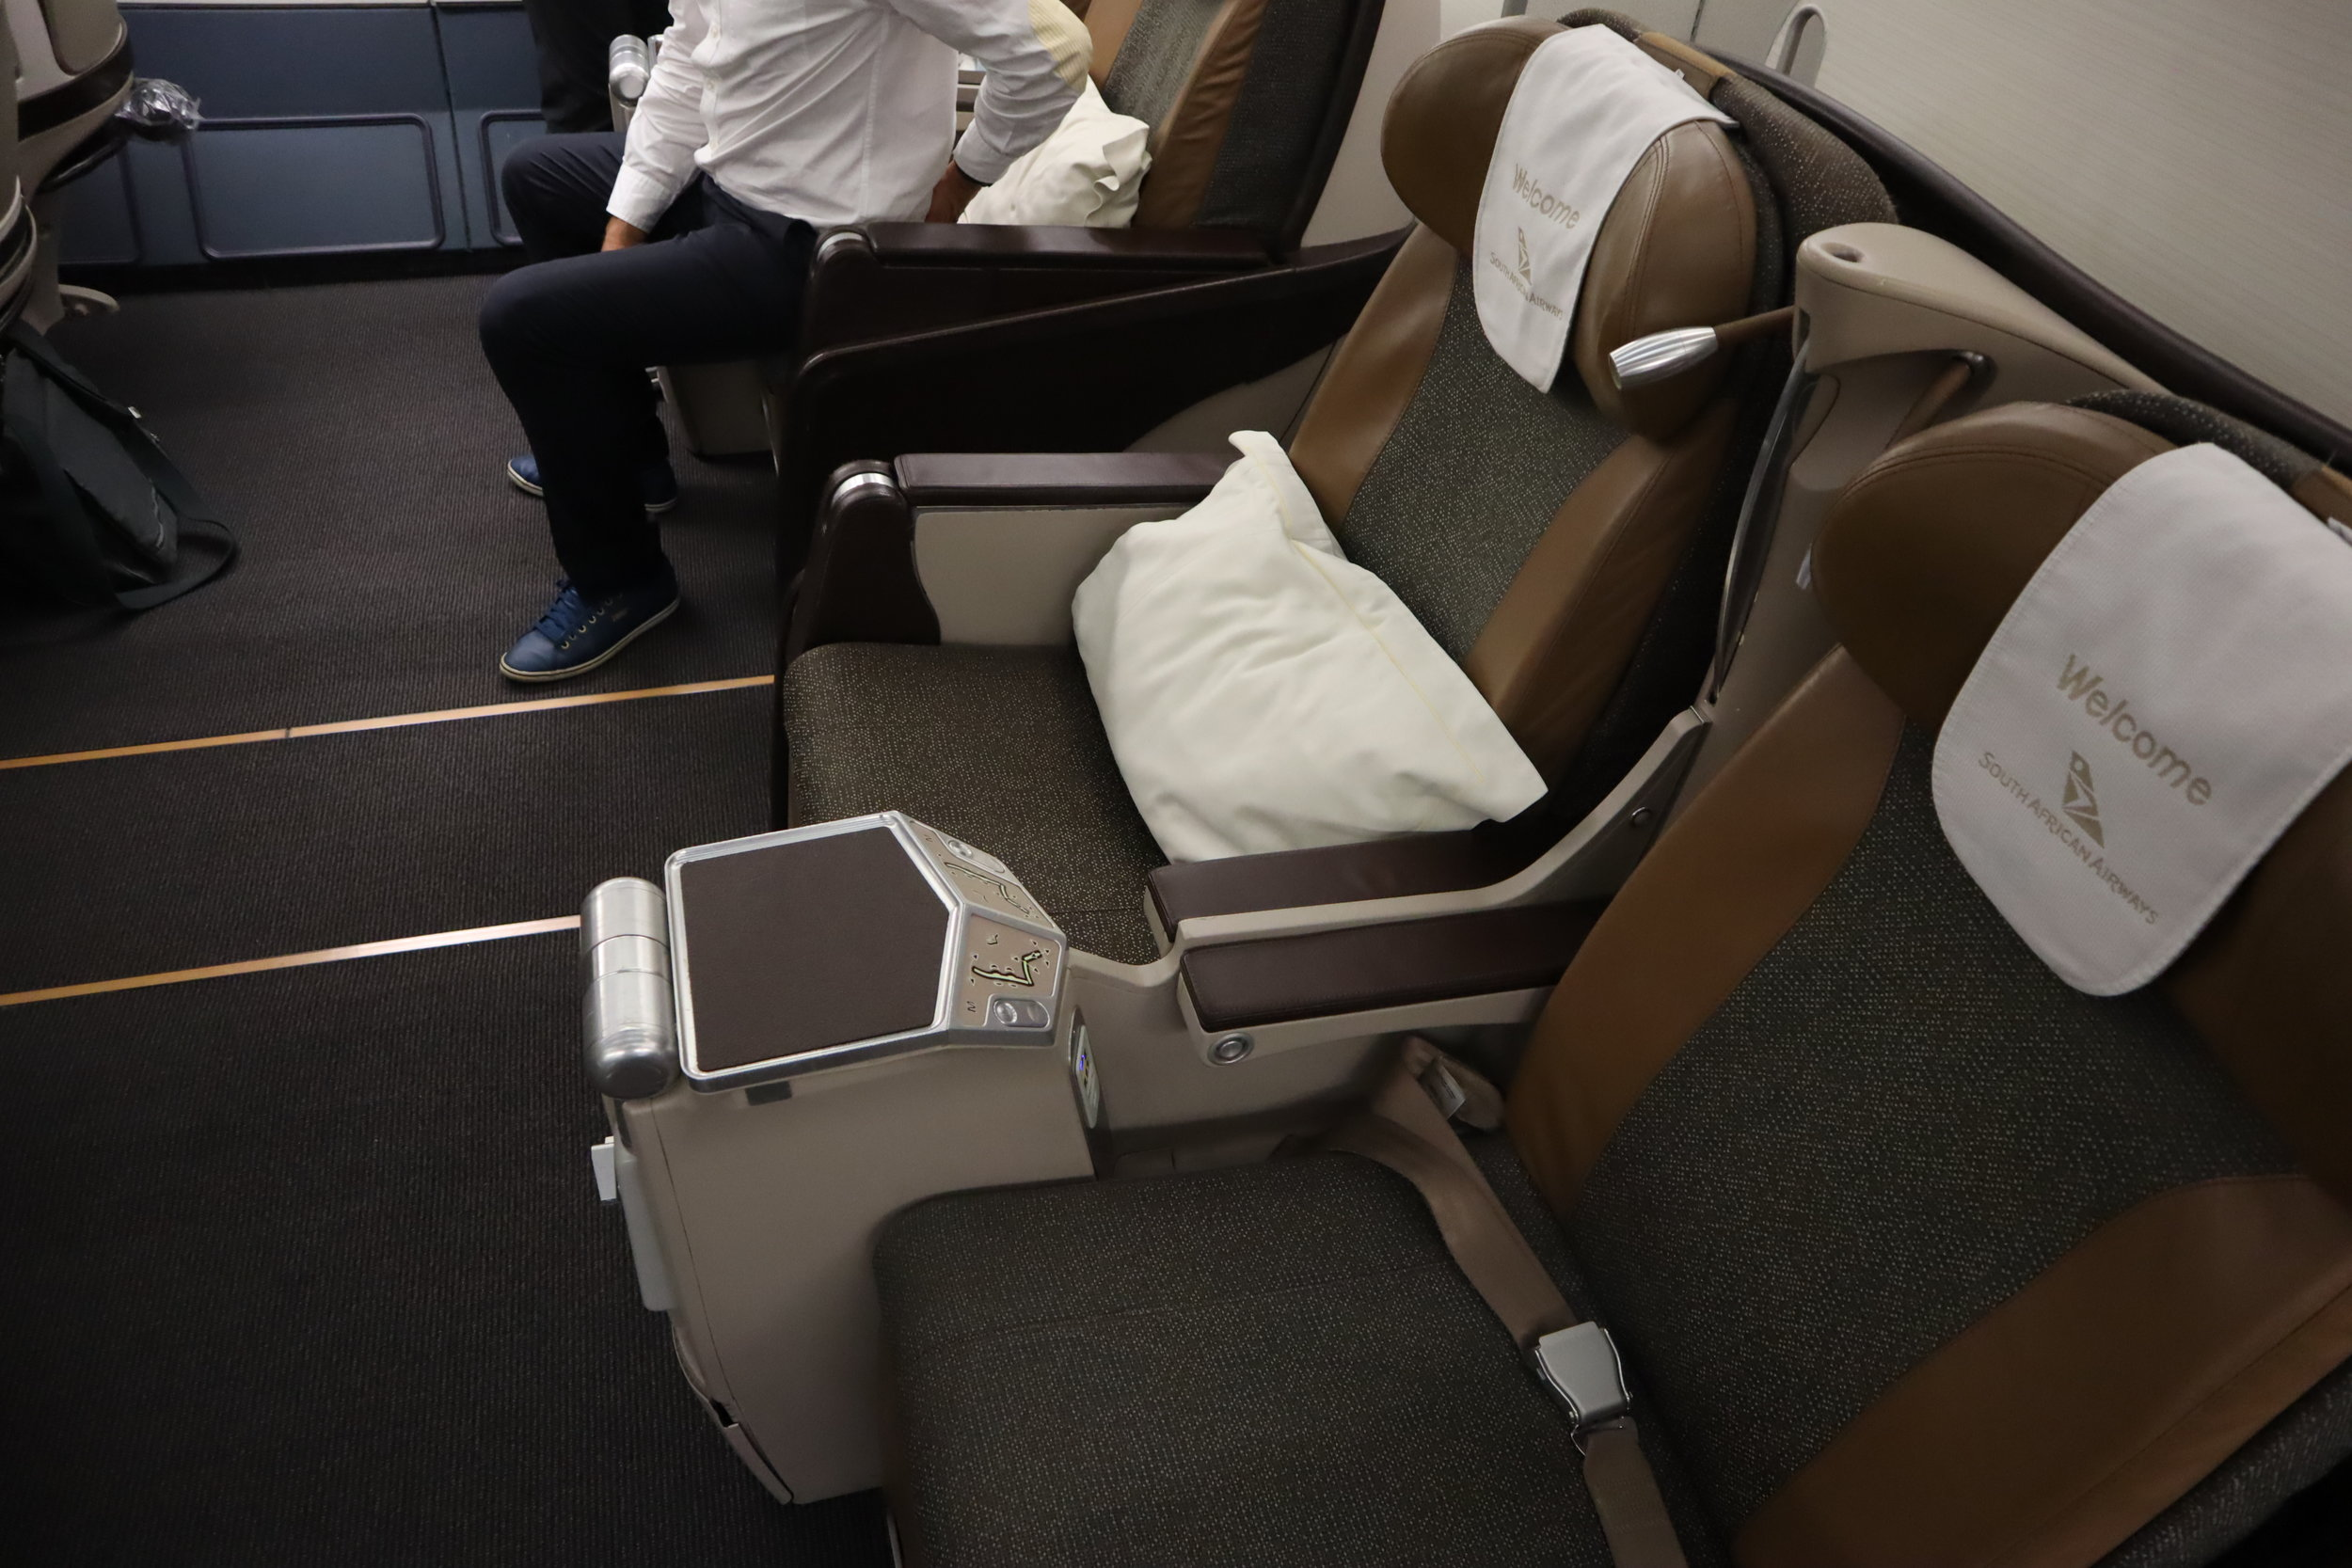 South African Airways business class – Seats 4D and 4G